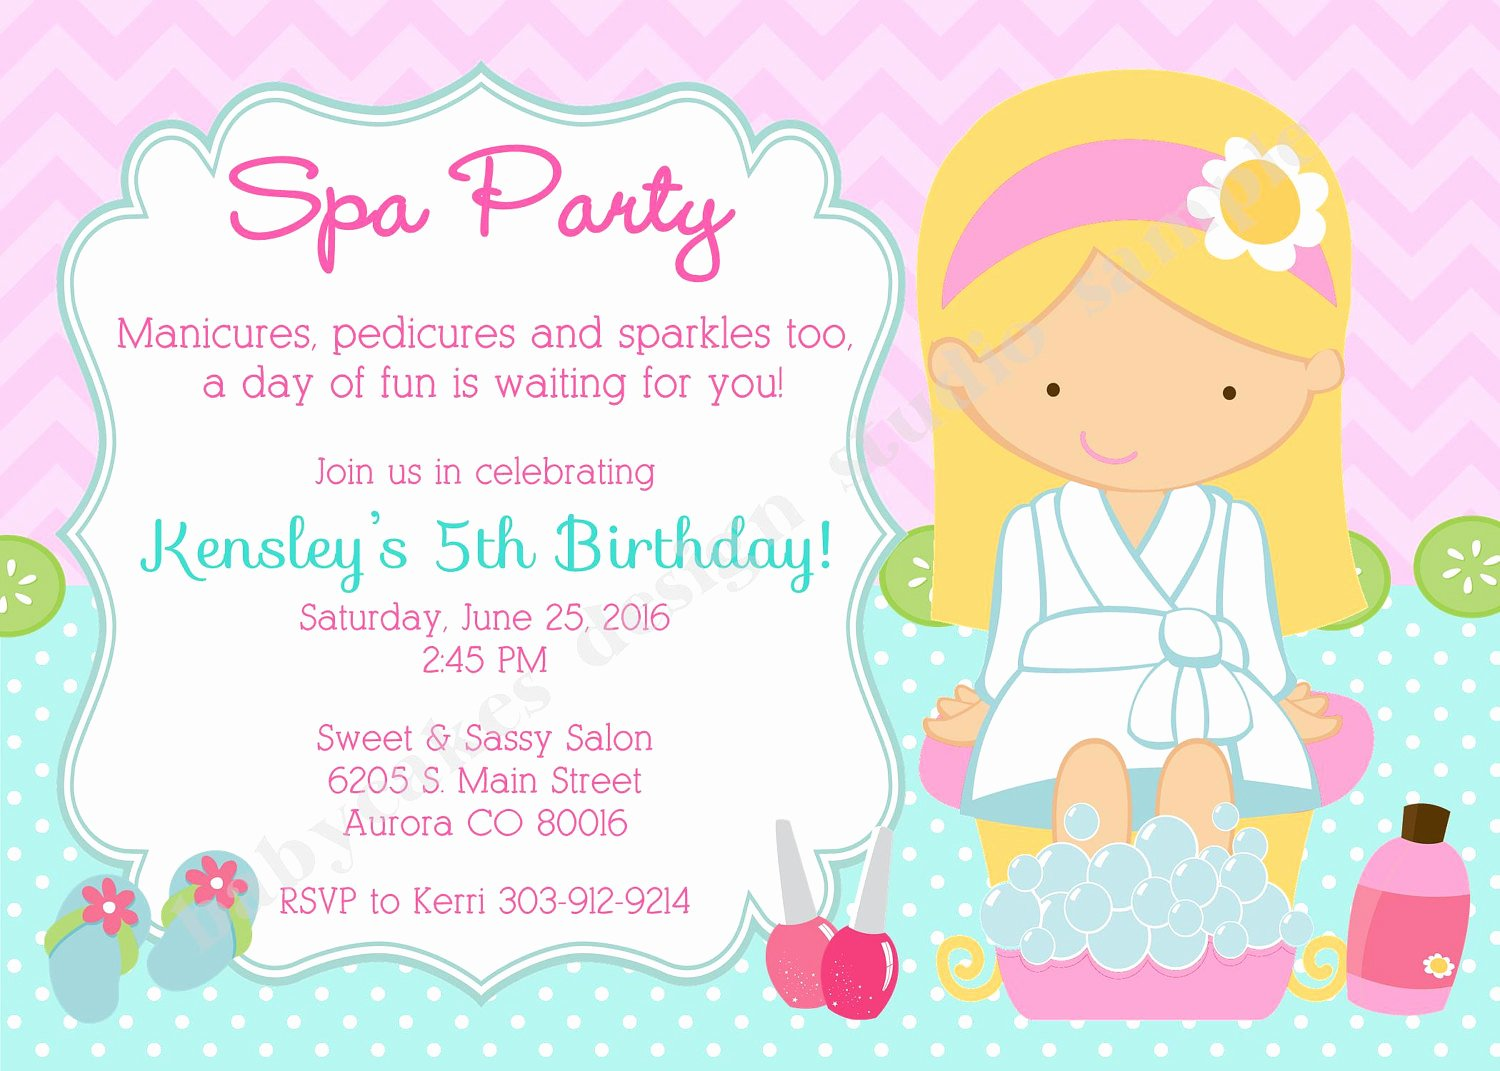 Spa Party Invitation Wording Luxury Spa Party Invitation Invite Spa Birthday Party Invitation